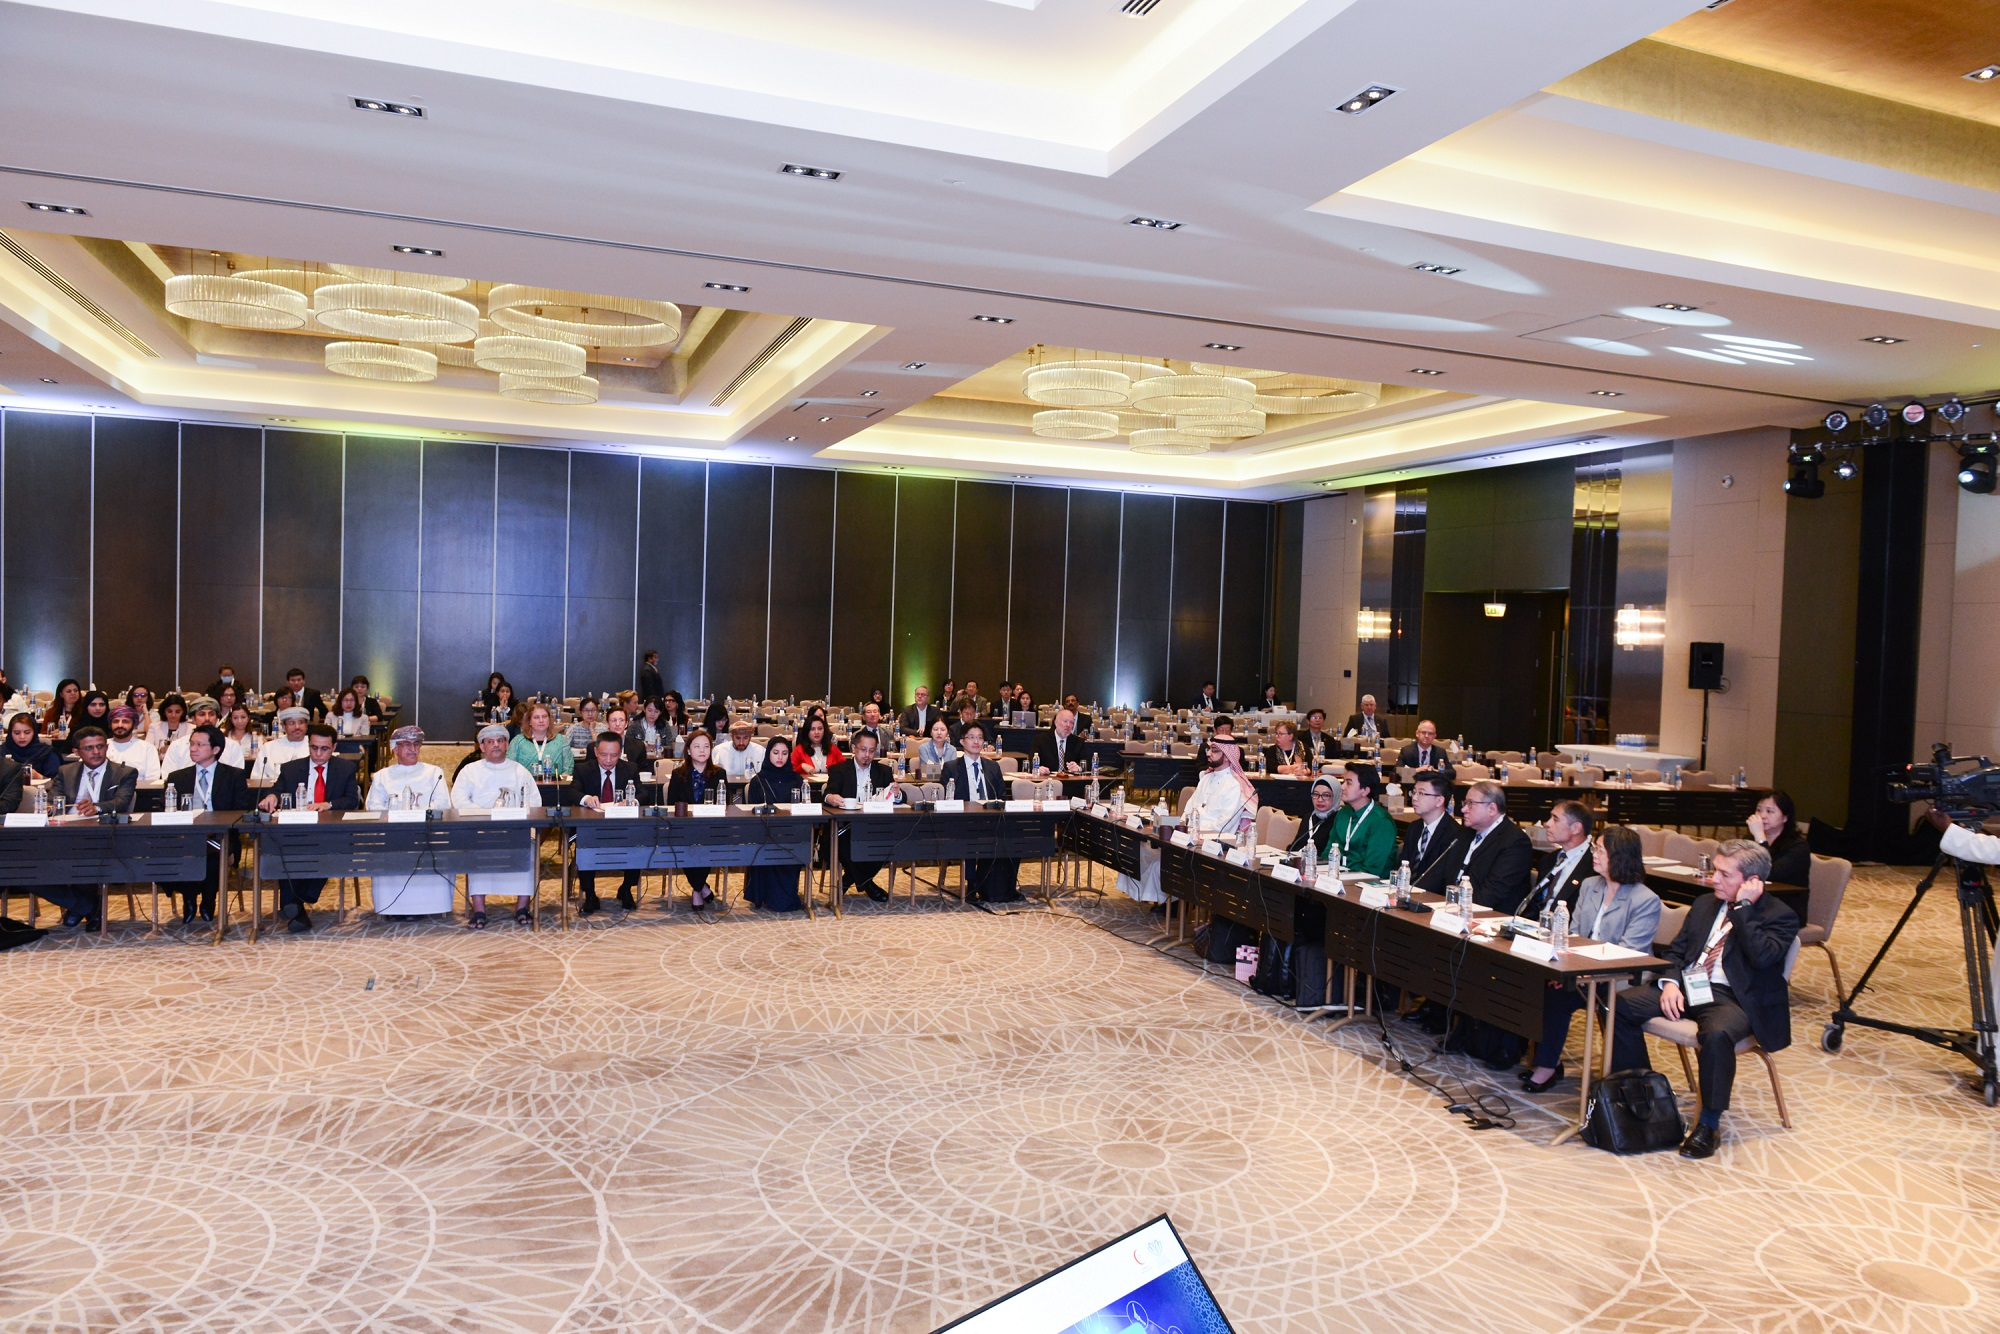 24th AHWP Annual Meeting Photos, Muscat, Oman 2019